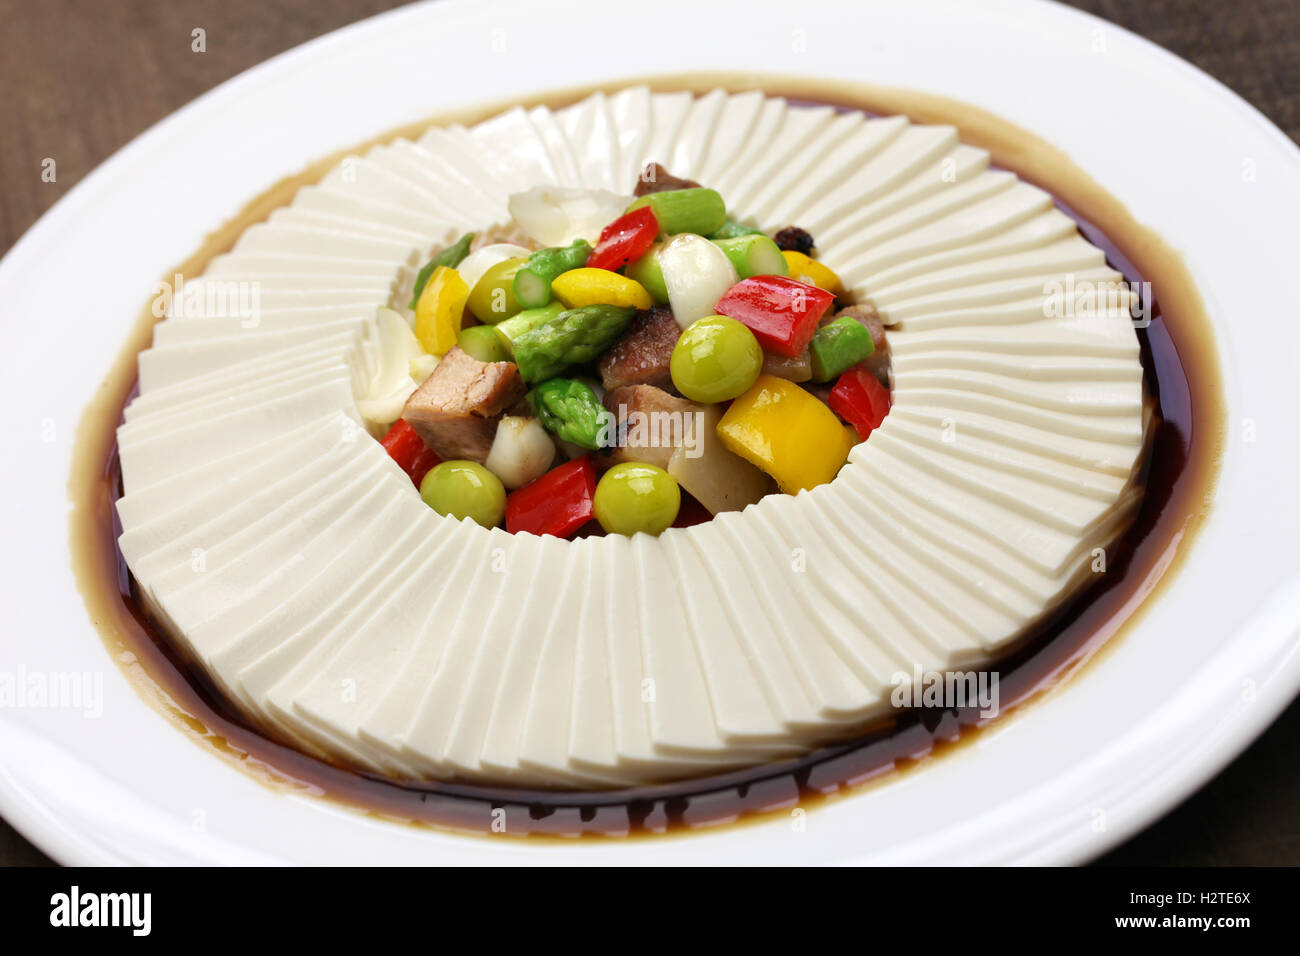 one thousand leaves tofu, chinese bean curd cuisine - Stock Image